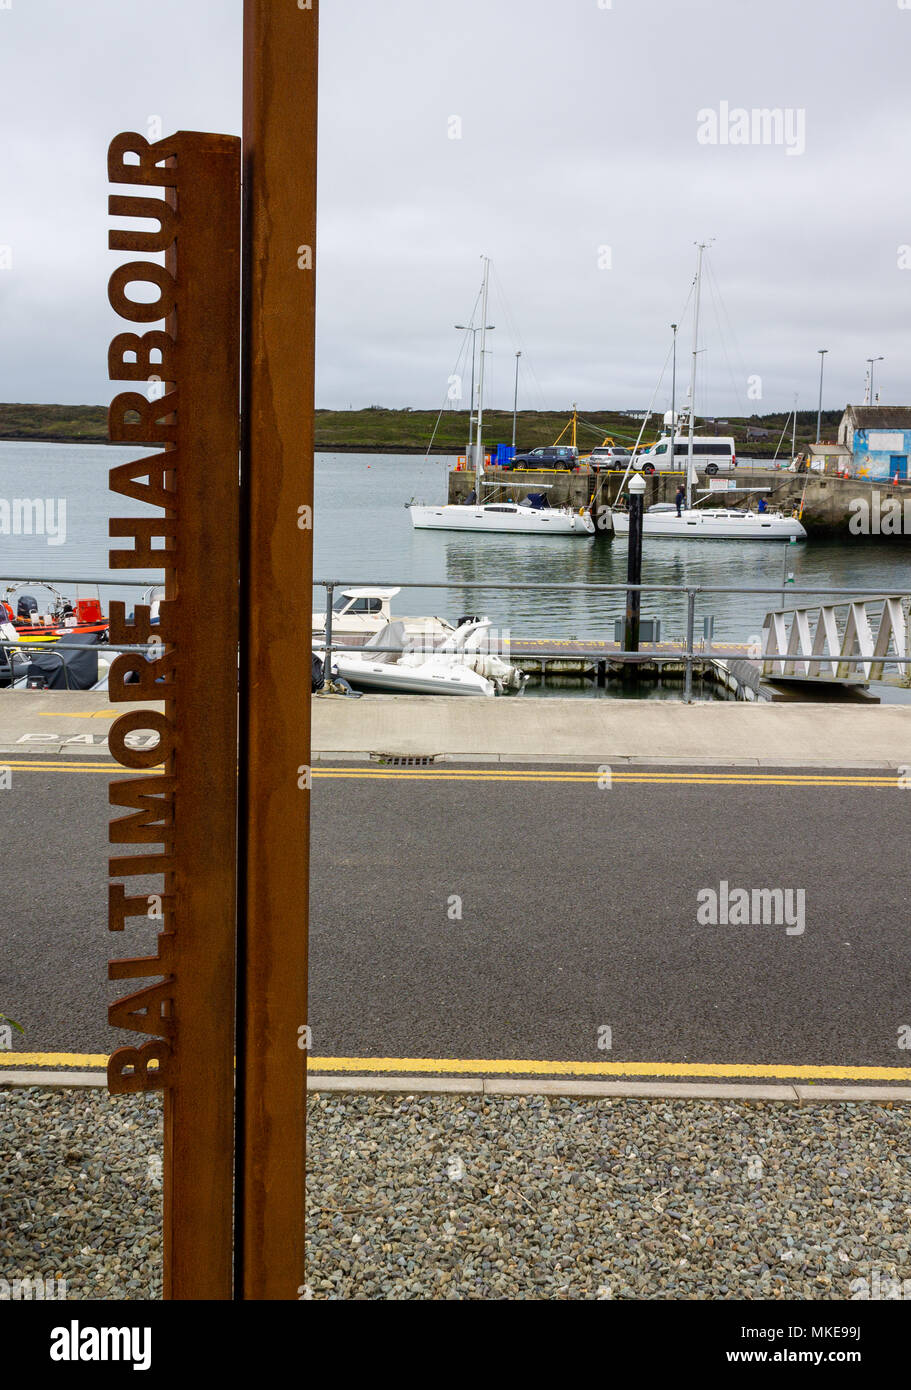 sign made out of metal letters spelling baltimore harbour, Ireland and allowed to rust in the salt sea air. - Stock Image